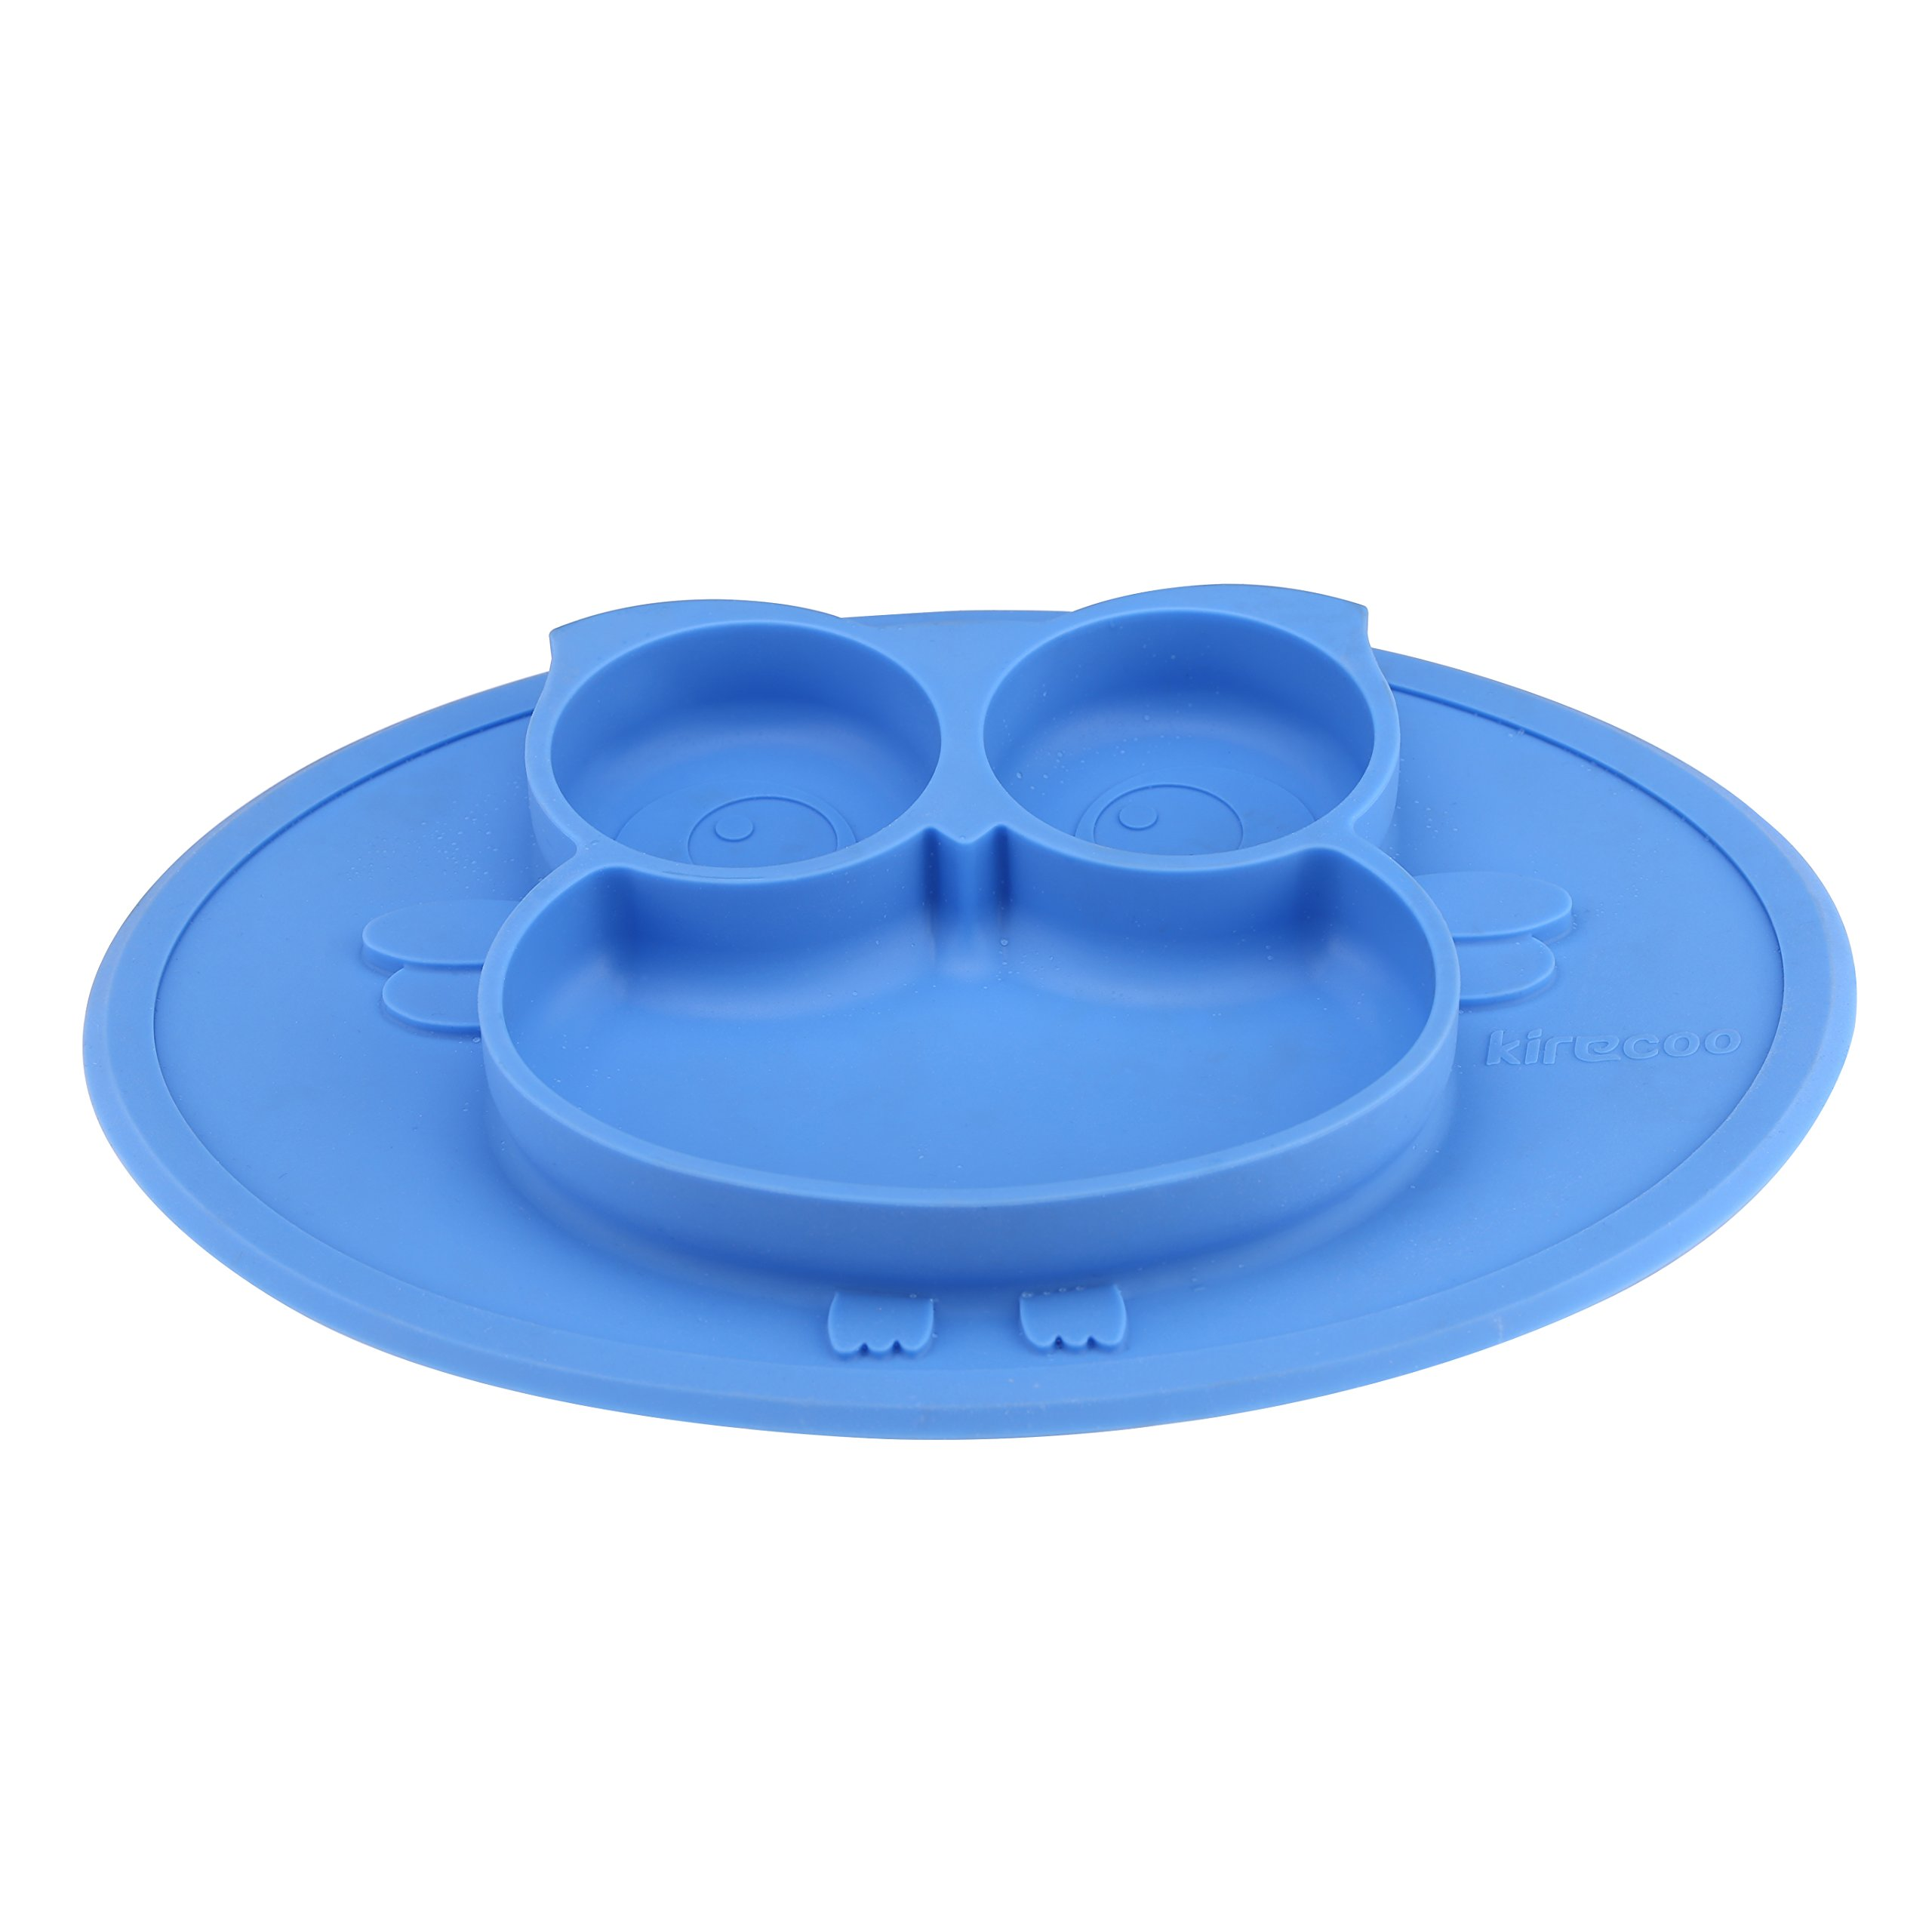 Kirecoo Babies Highchair Feeding Tray Round Silicone Suction Owl ...